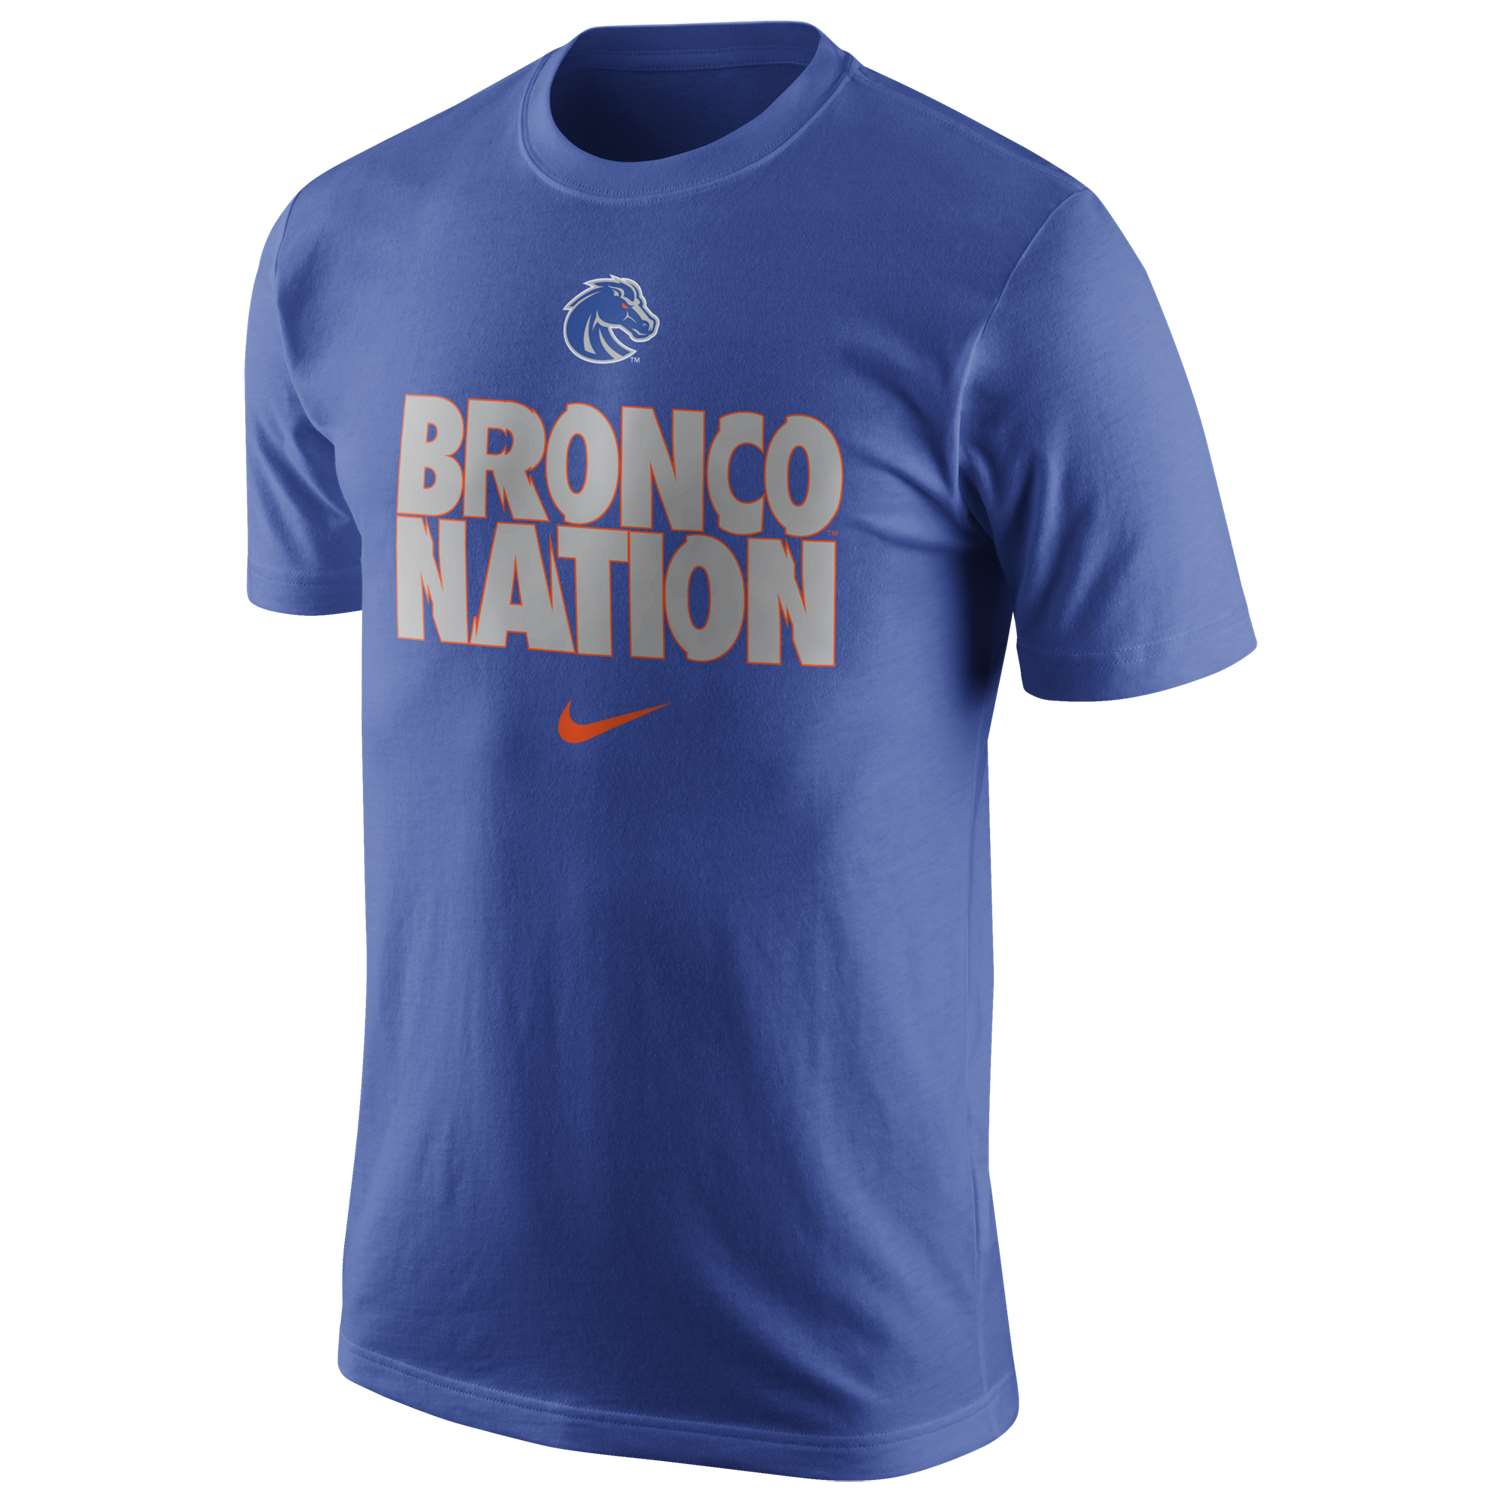 Nike boise state broncos local cotton t shirt for Boise t shirt printing